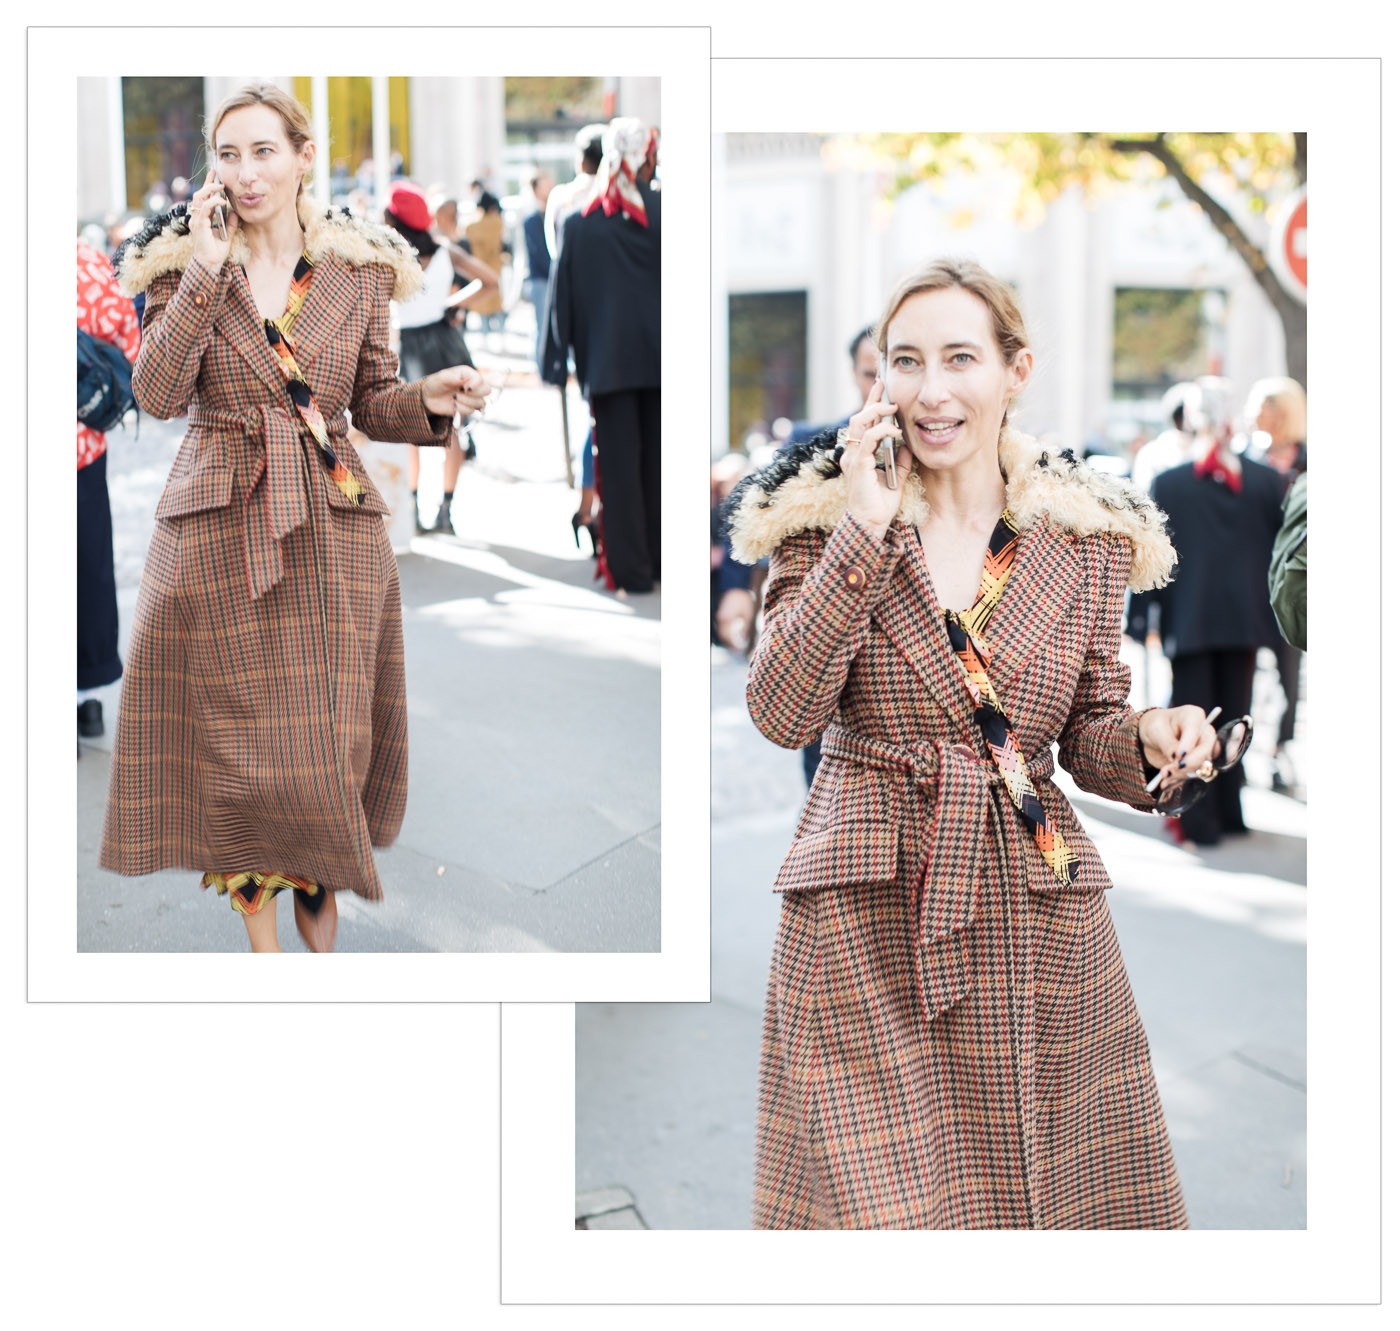 Plaid street style trend the biggest fall fashion trend at Paris fashion Week photography by Armenyl